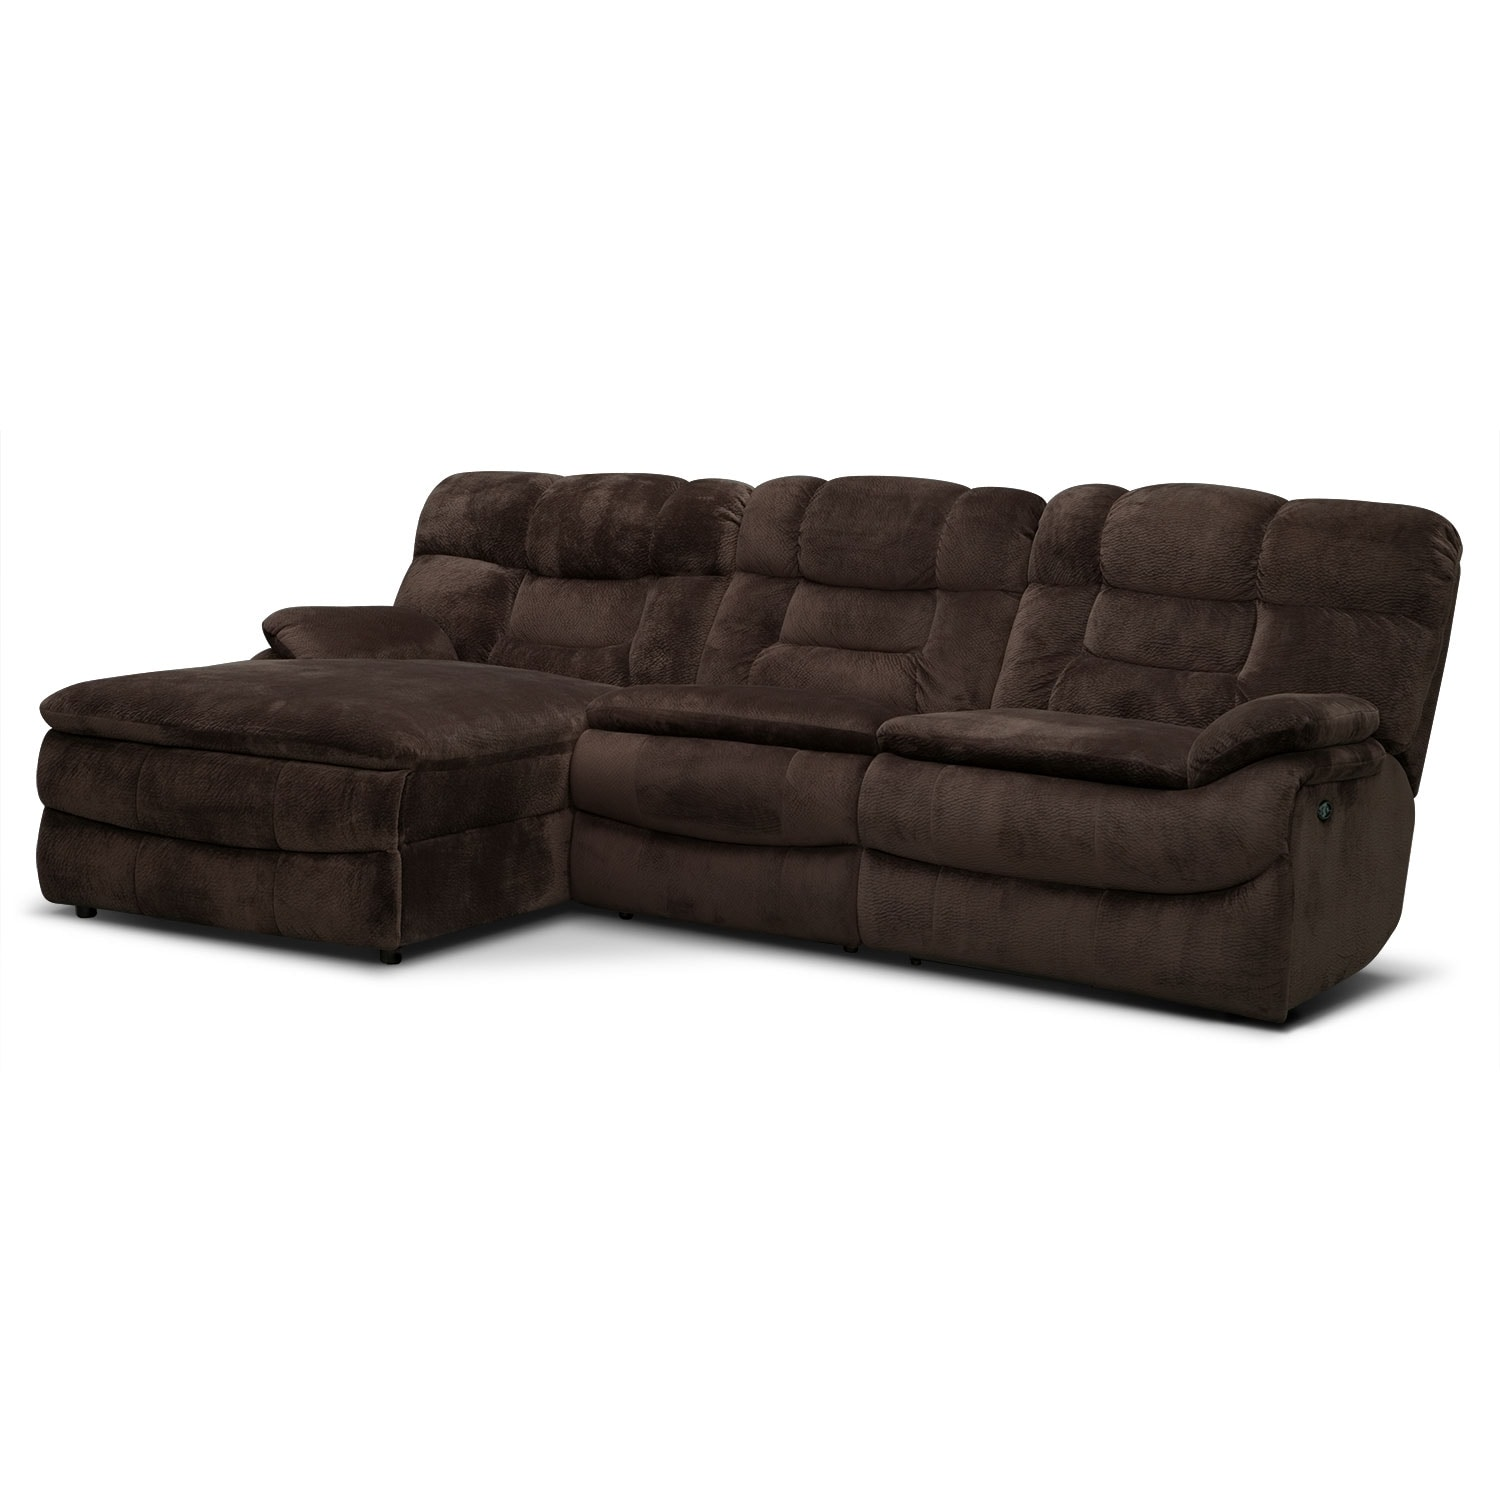 Living Room Furniture - Big Softie 3-Piece Left-Facing Power Reclining Sectional - Chocolate